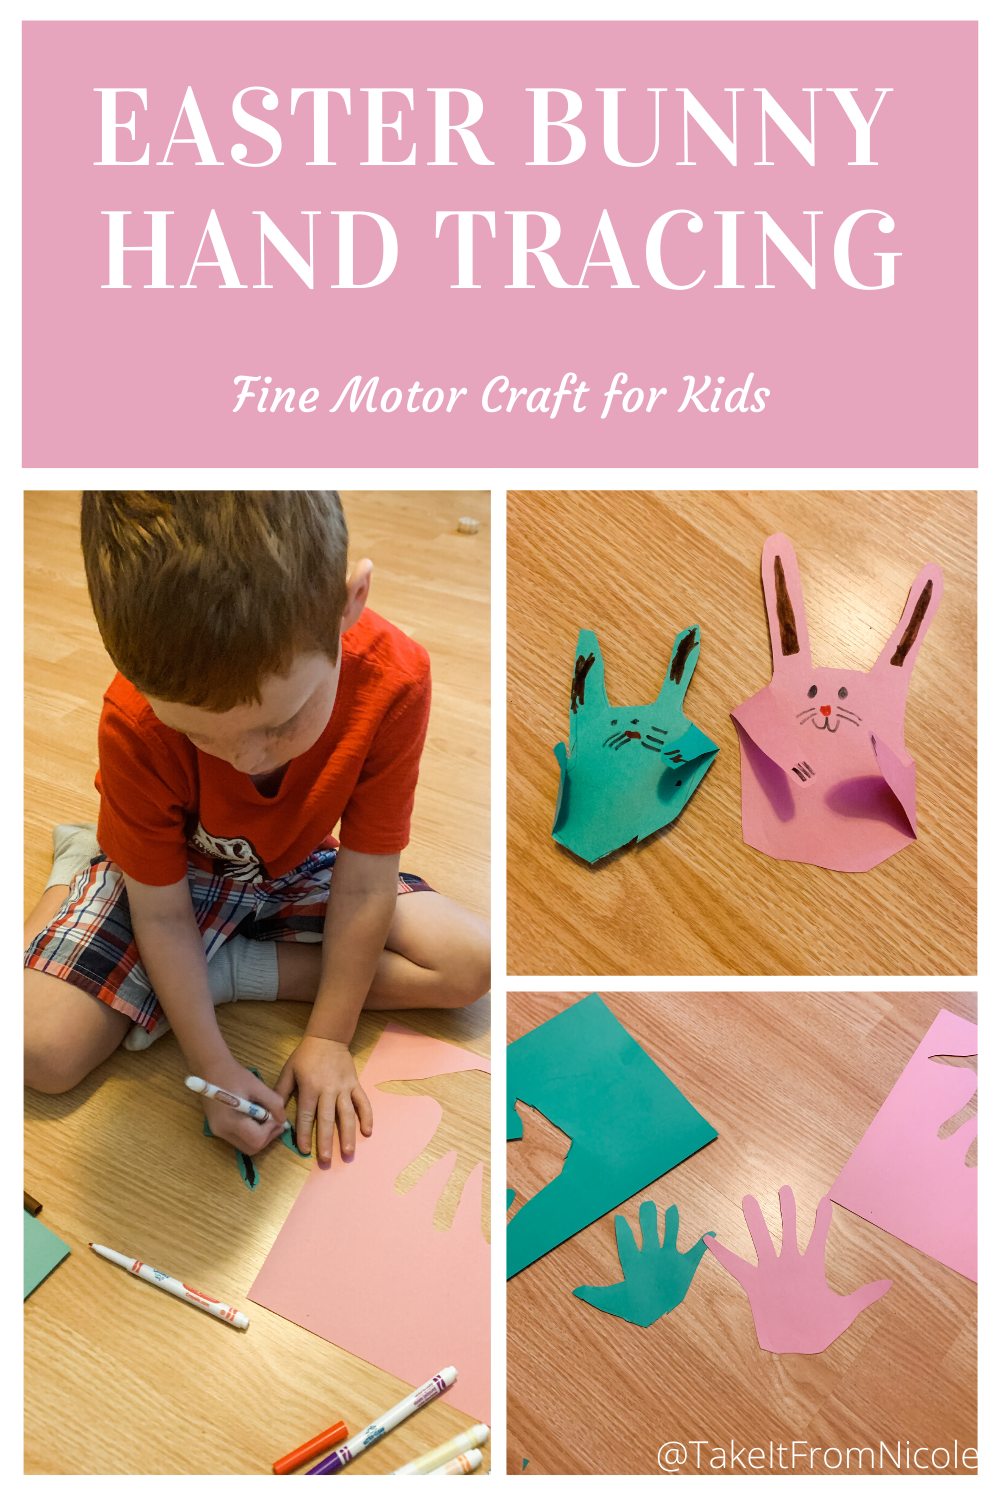 Easter Bunny Hand Tracing Craft